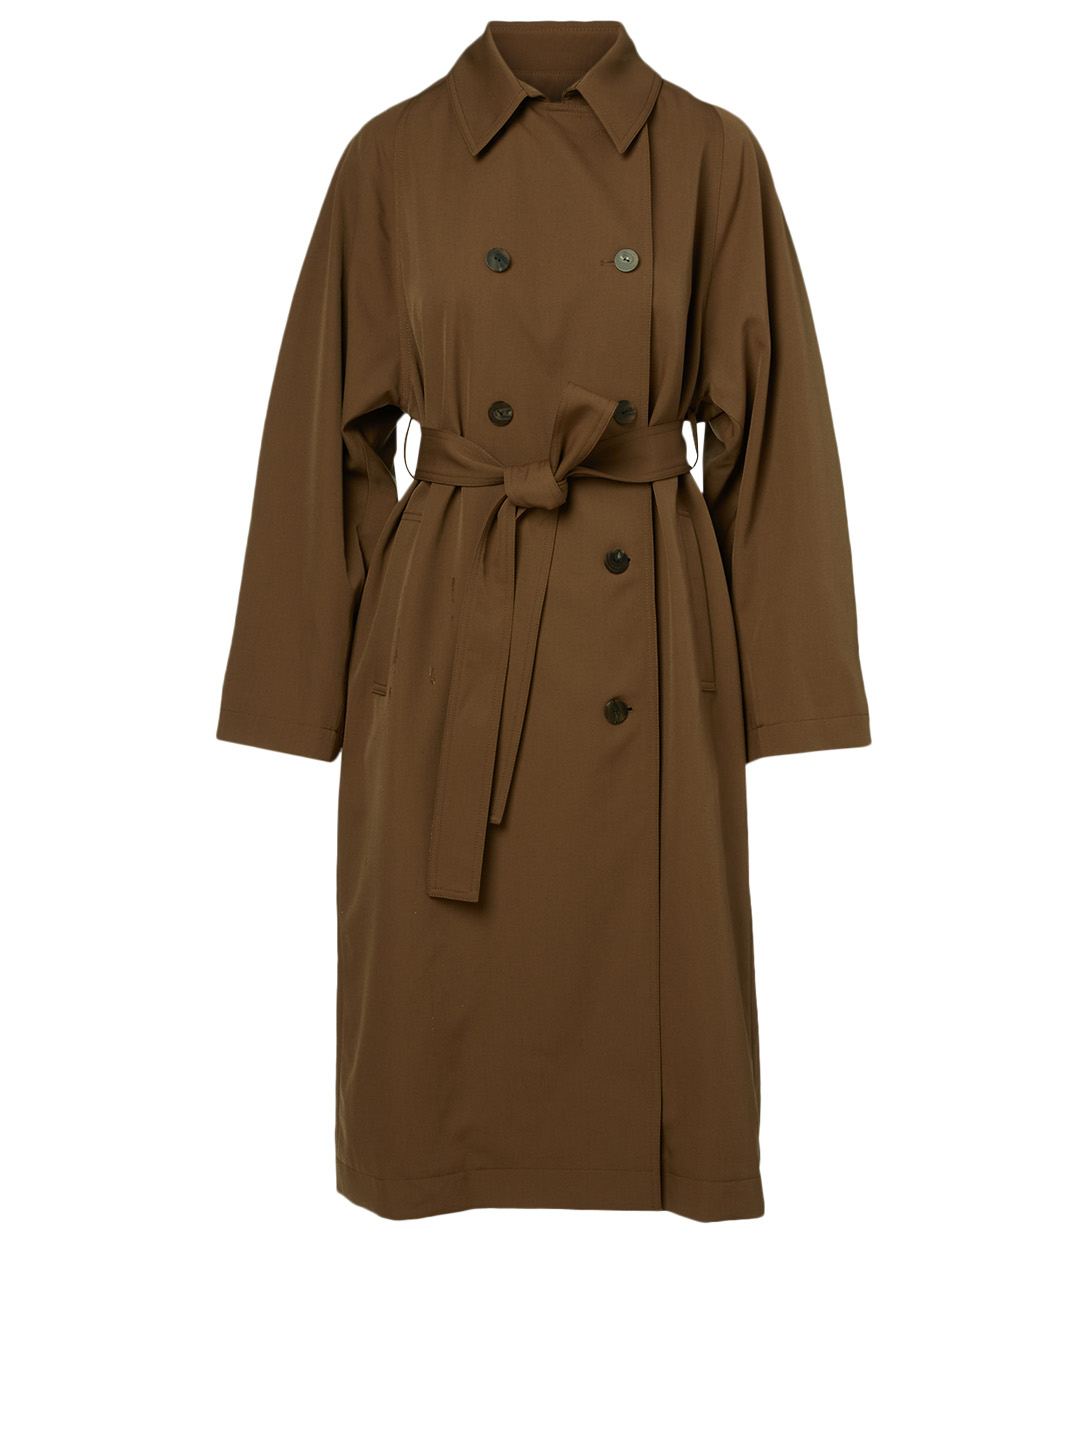 KUHO Wool-Blend Double-Breasted Coat Women's Neutral